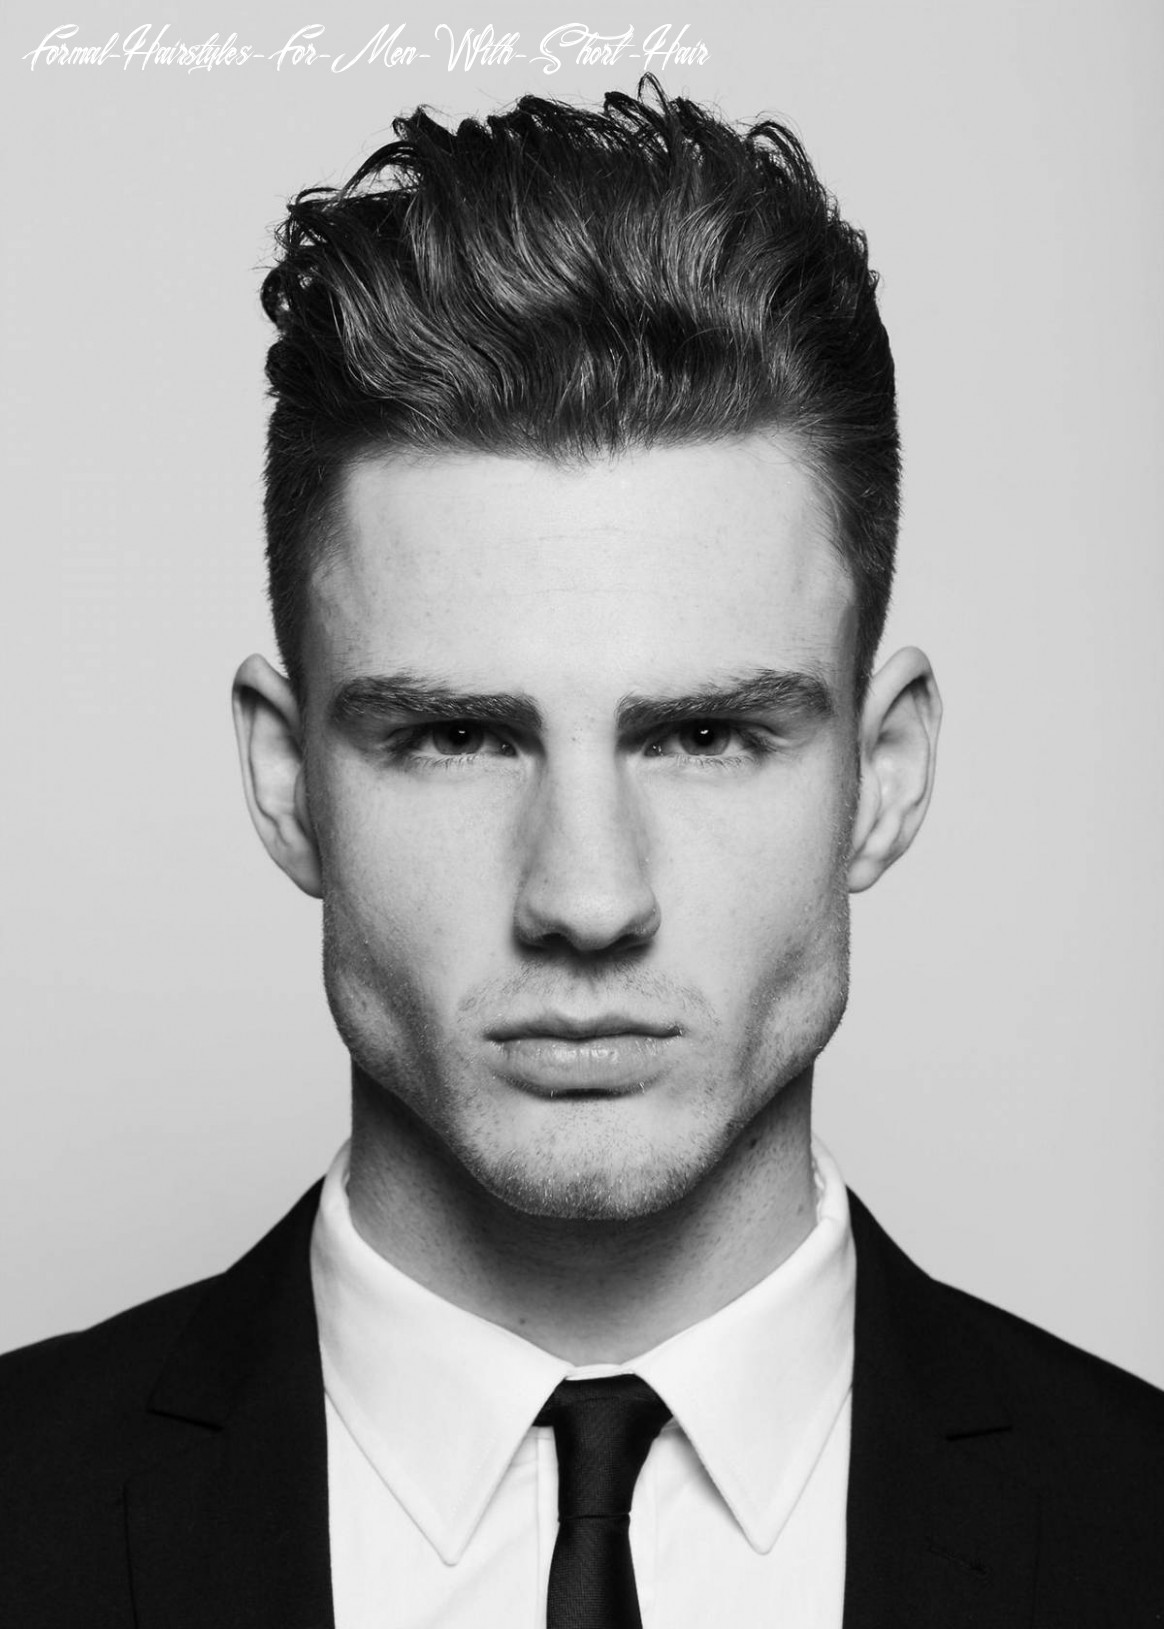 12 best stylish short hairstyles for men [with photos & tips] formal hairstyles for men with short hair